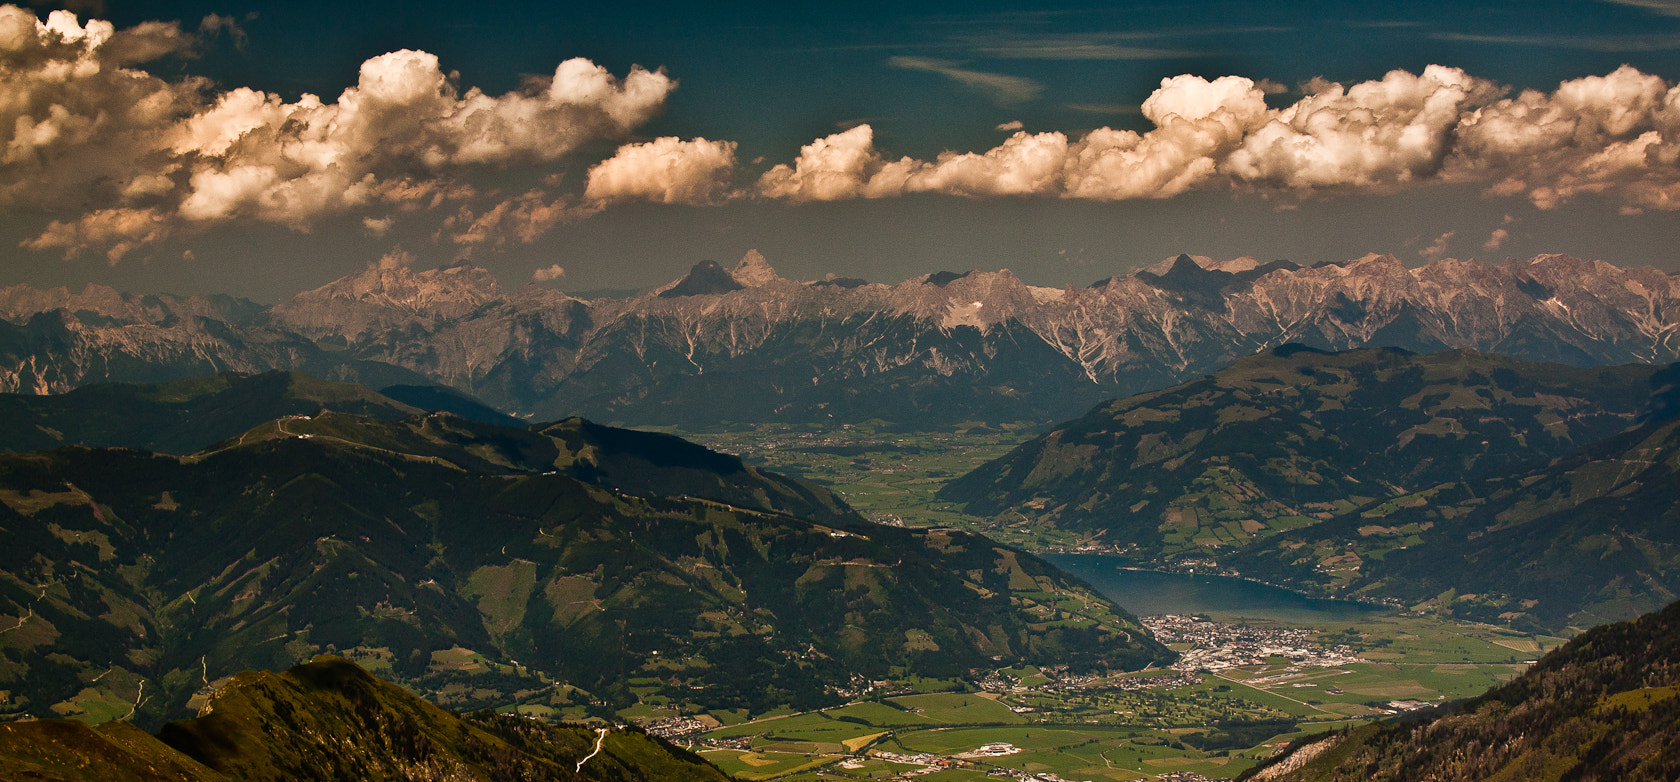 Photograph Zell am See by Christoph Müller on 500px